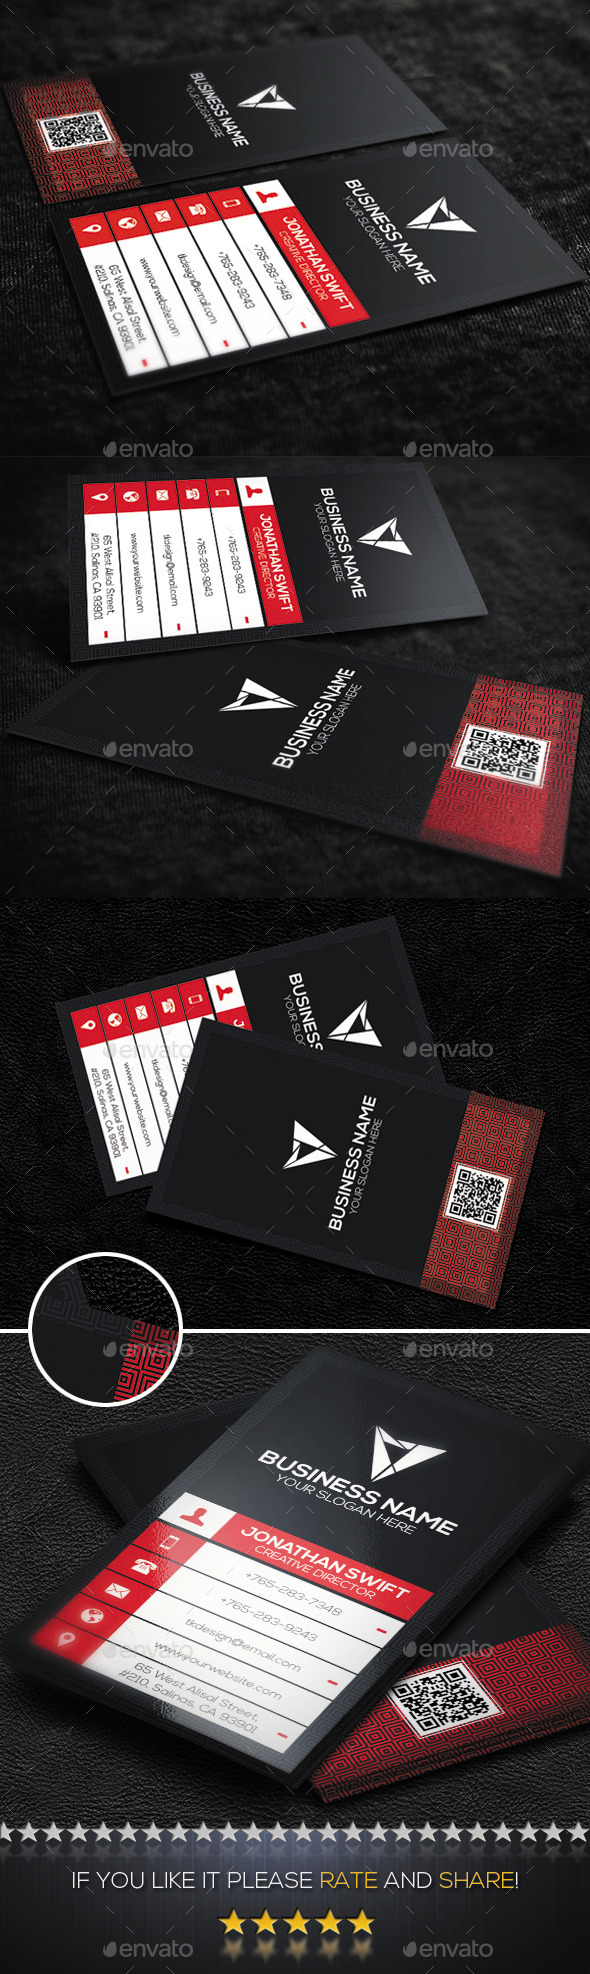 Corporate Business Card No.04 - Corporate Business Cards